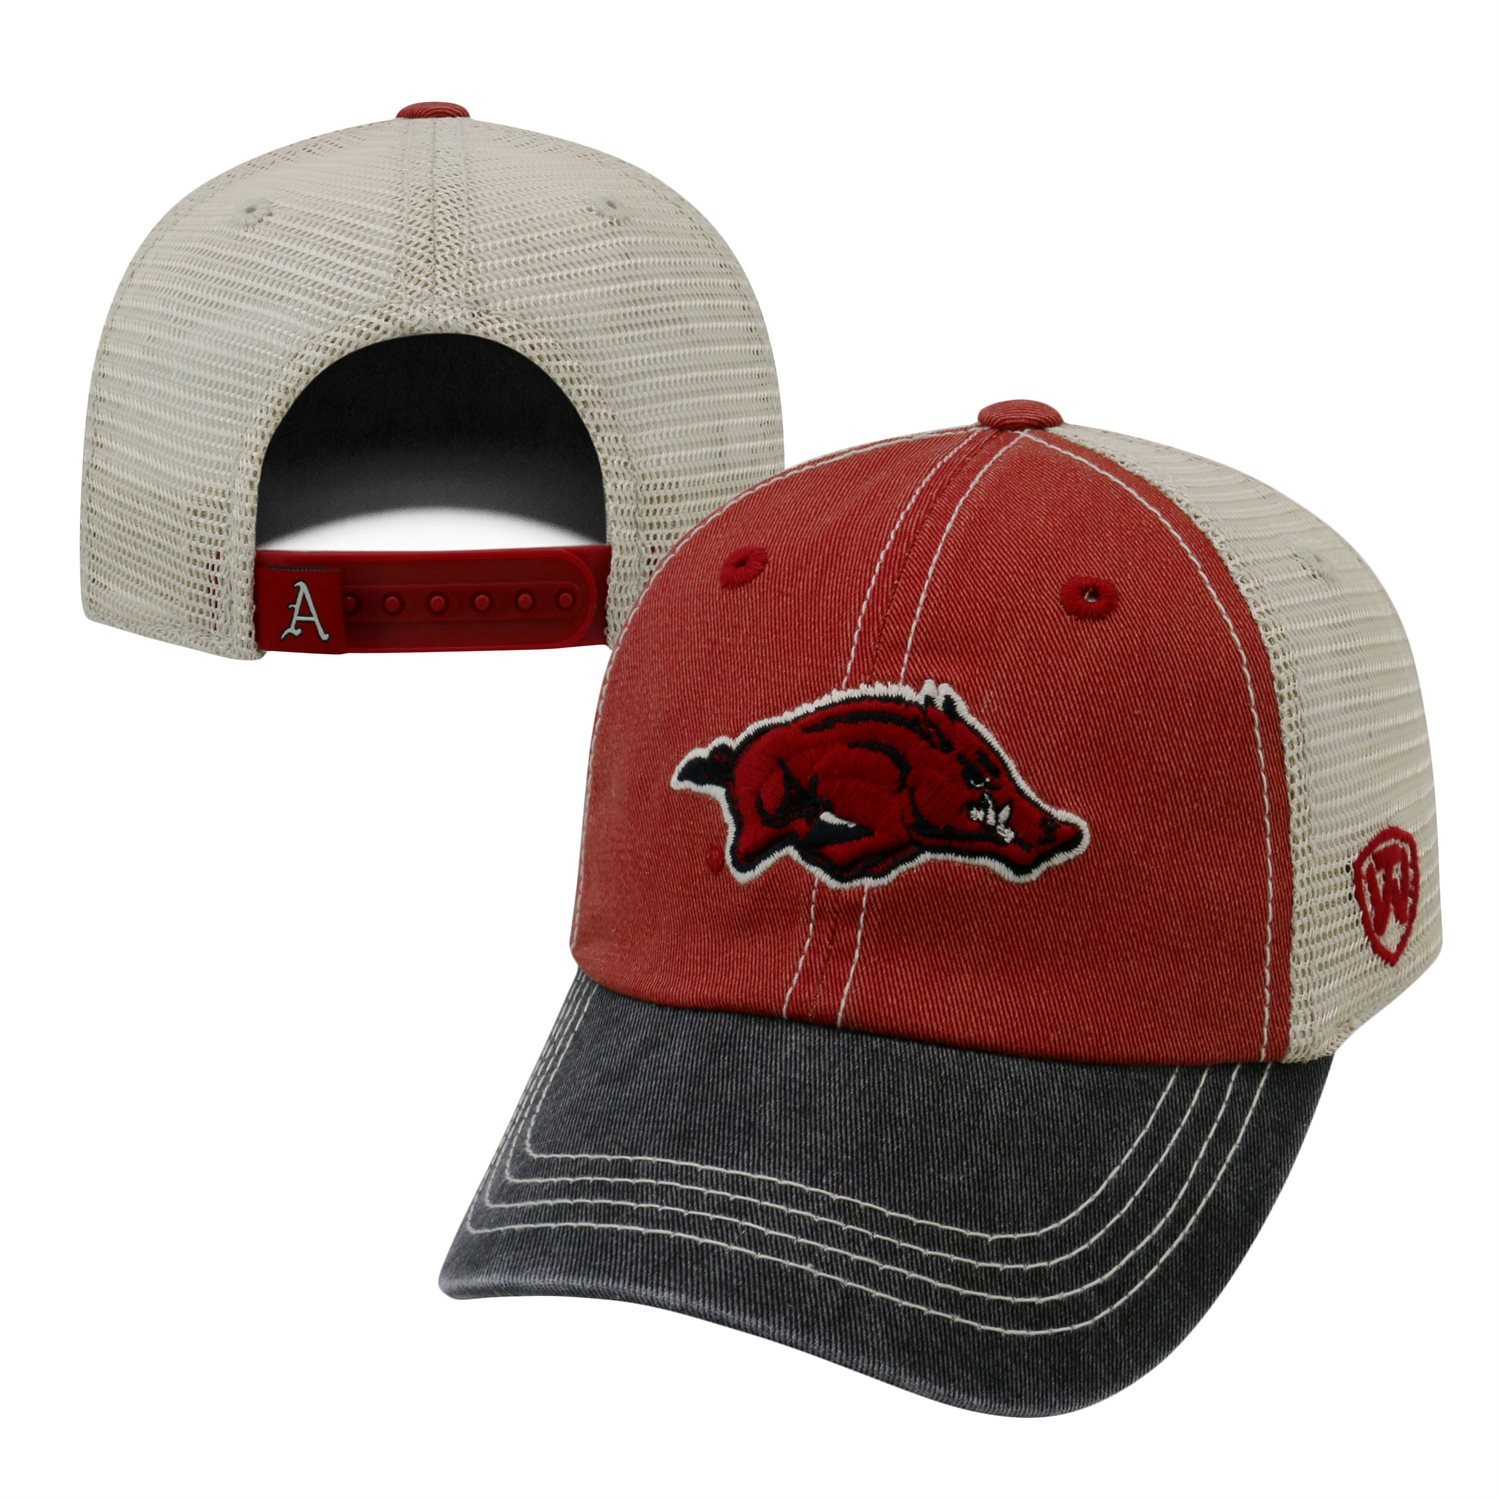 newest da3c6 b38a3 Amazon.com   NCAA Adjustable Youth Offroad Hat Cap Top of The World    Sports   Outdoors